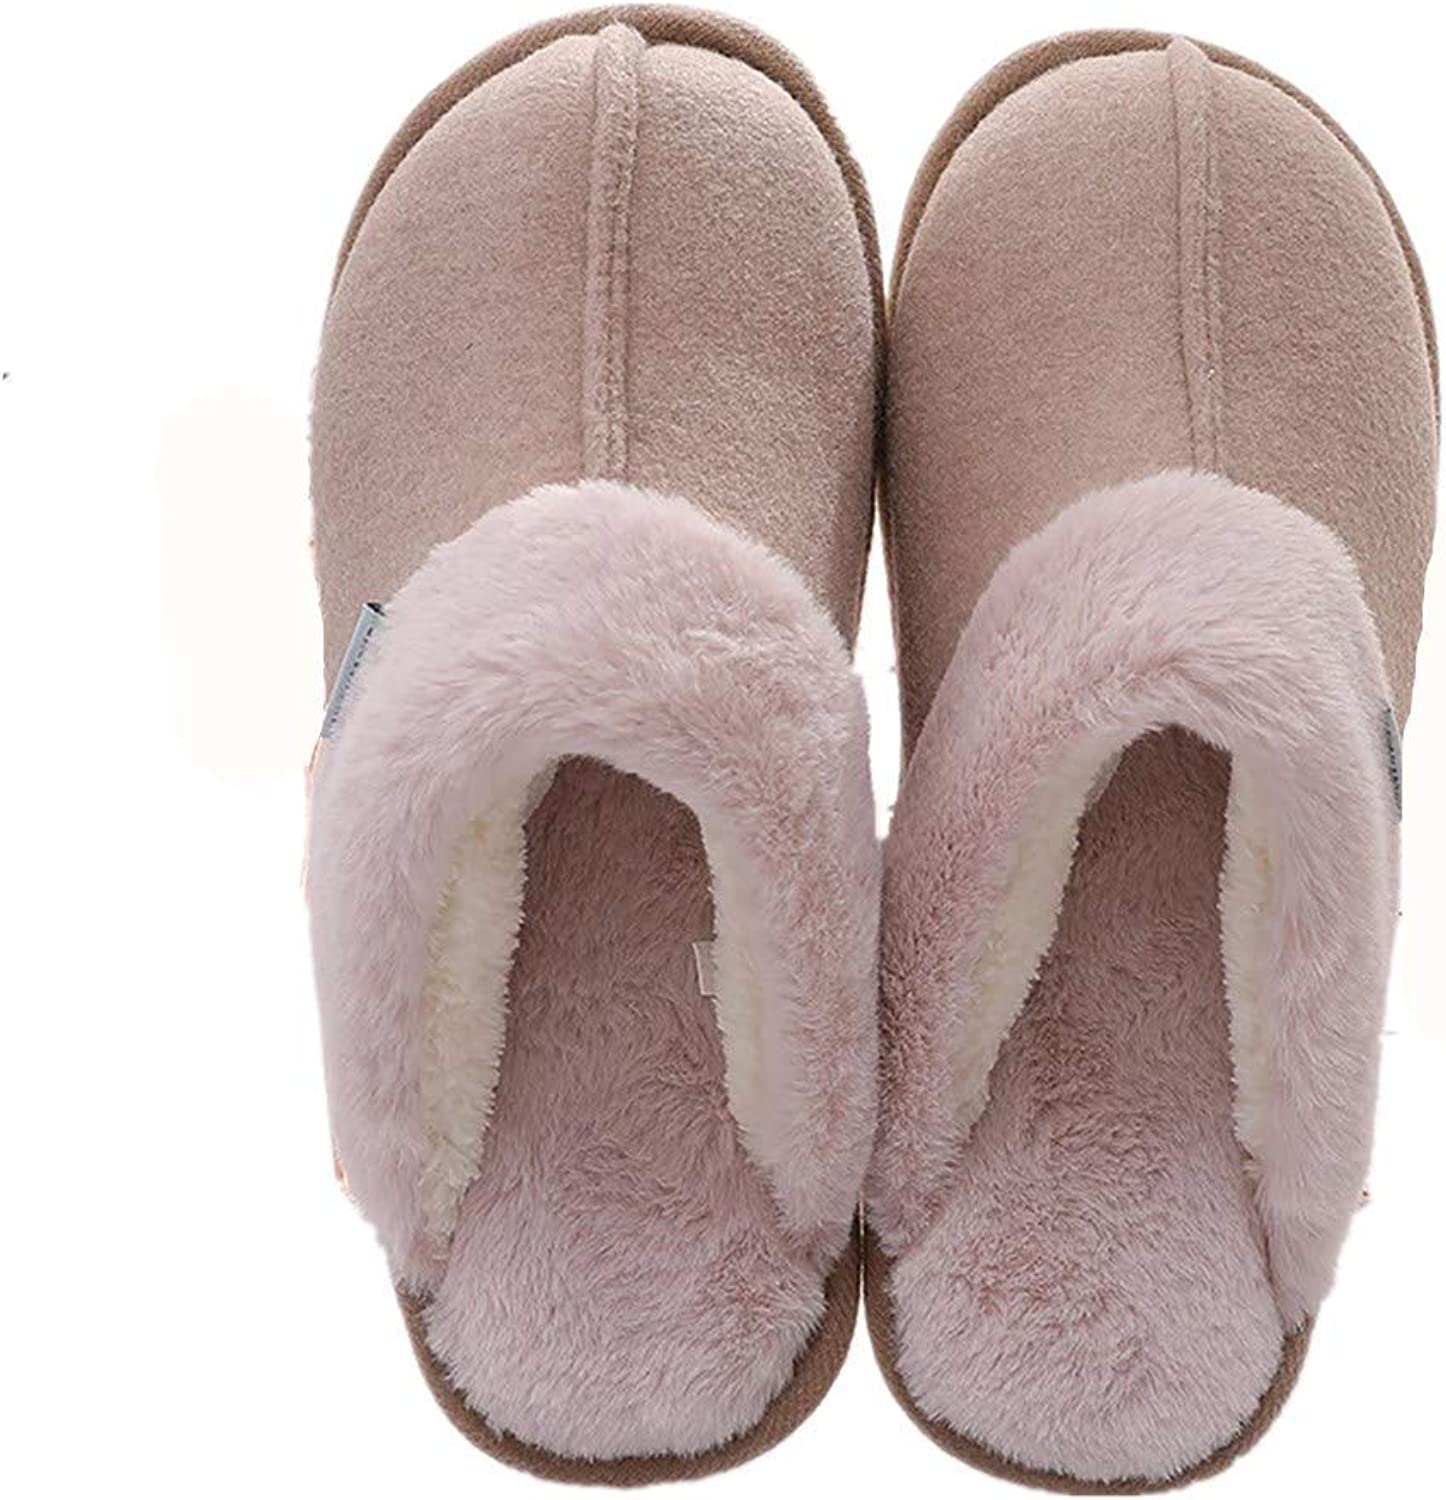 Man Cotton Slippers Cashmere Artificial Rabbit Hair House Warm Indoor Non-Slip Couple shoes (color   Coffee, Size   43 44 EU)